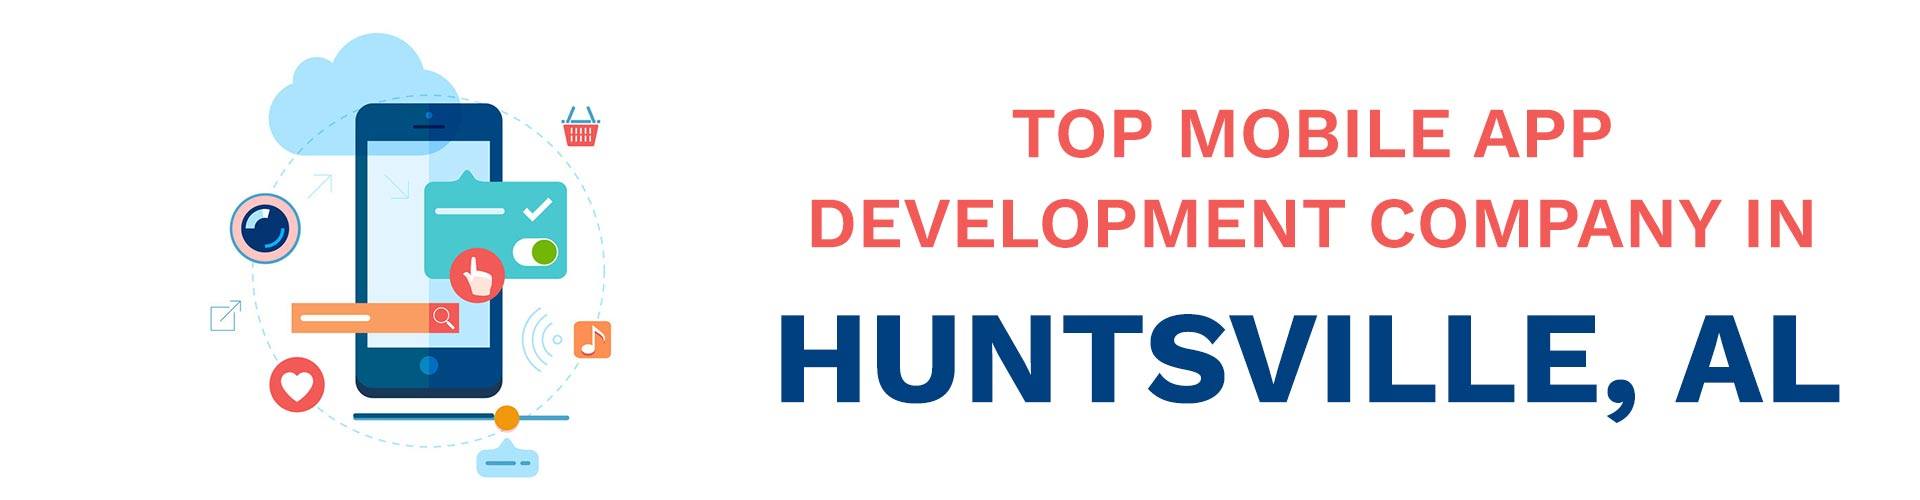 mobile app development company huntsville